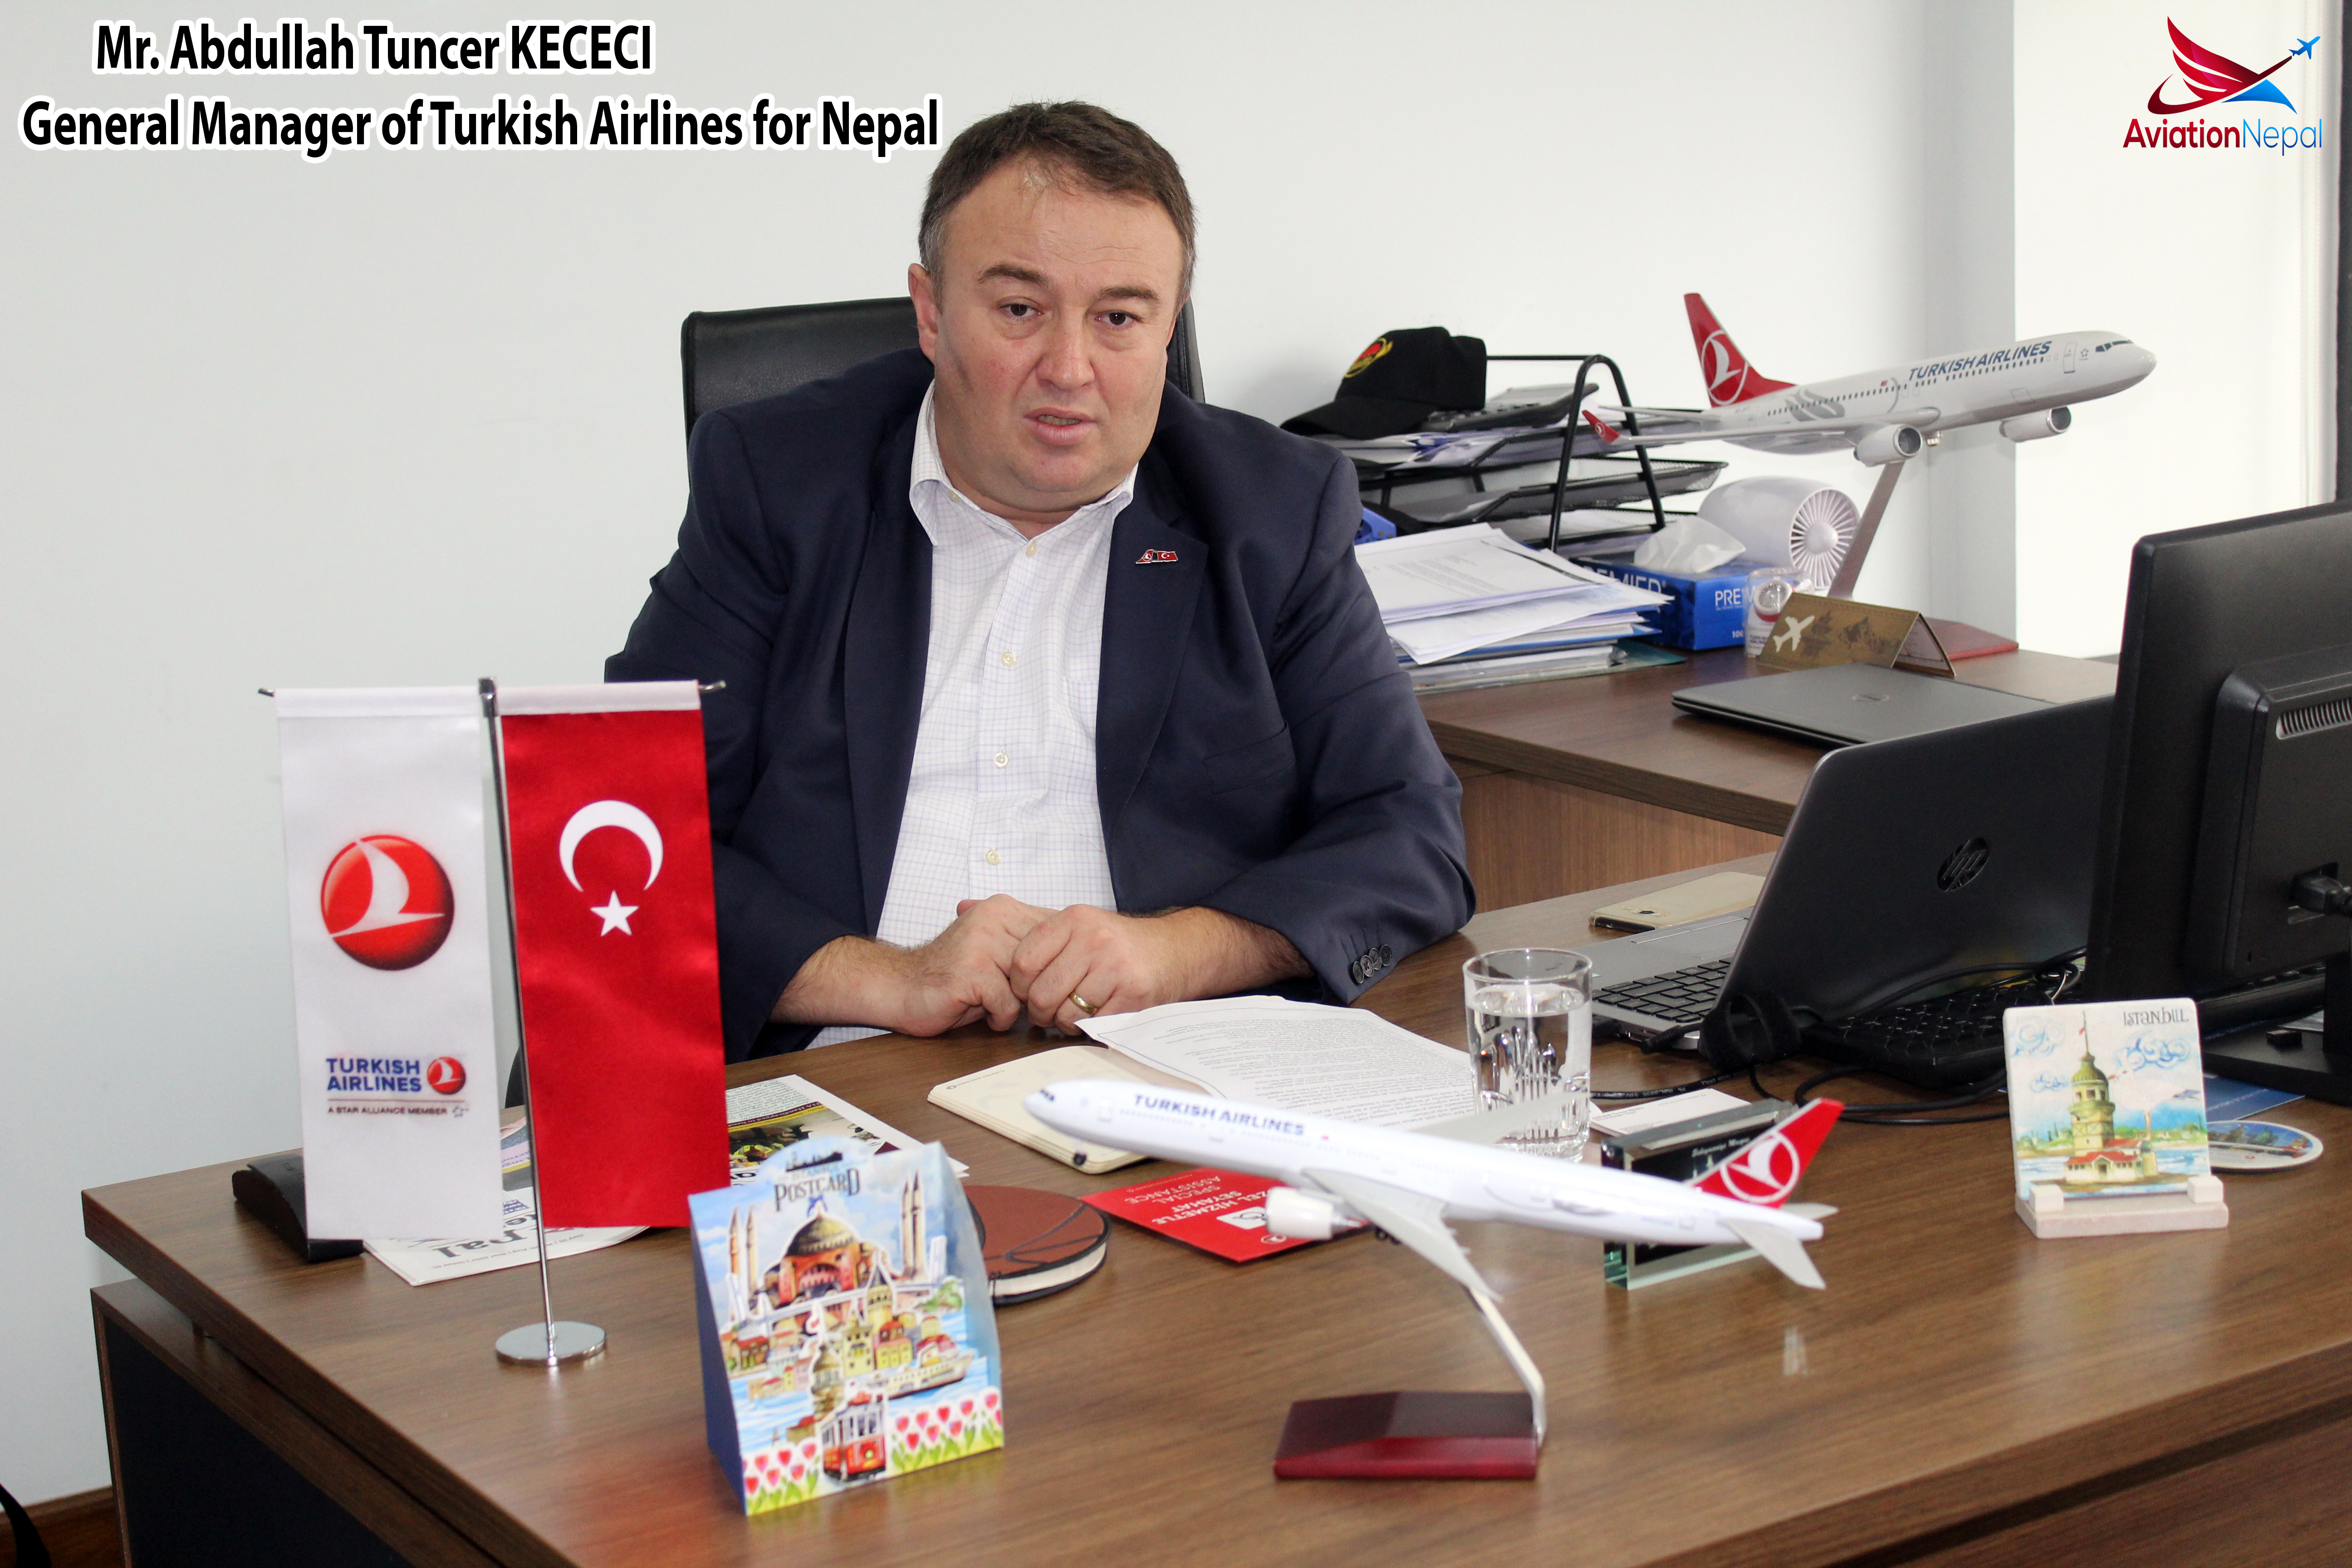 abdullah-turkish-airlines